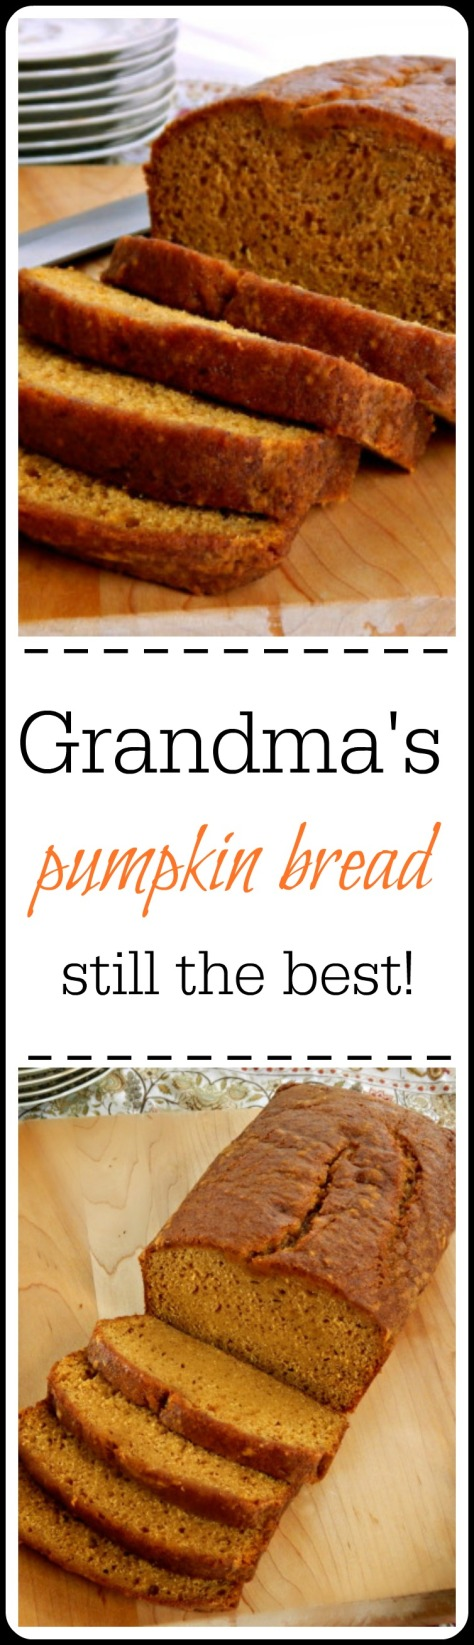 Seriously the best Pumpkin Bread I've ever had. Better than any of the newer, fancier versions - hands down!!